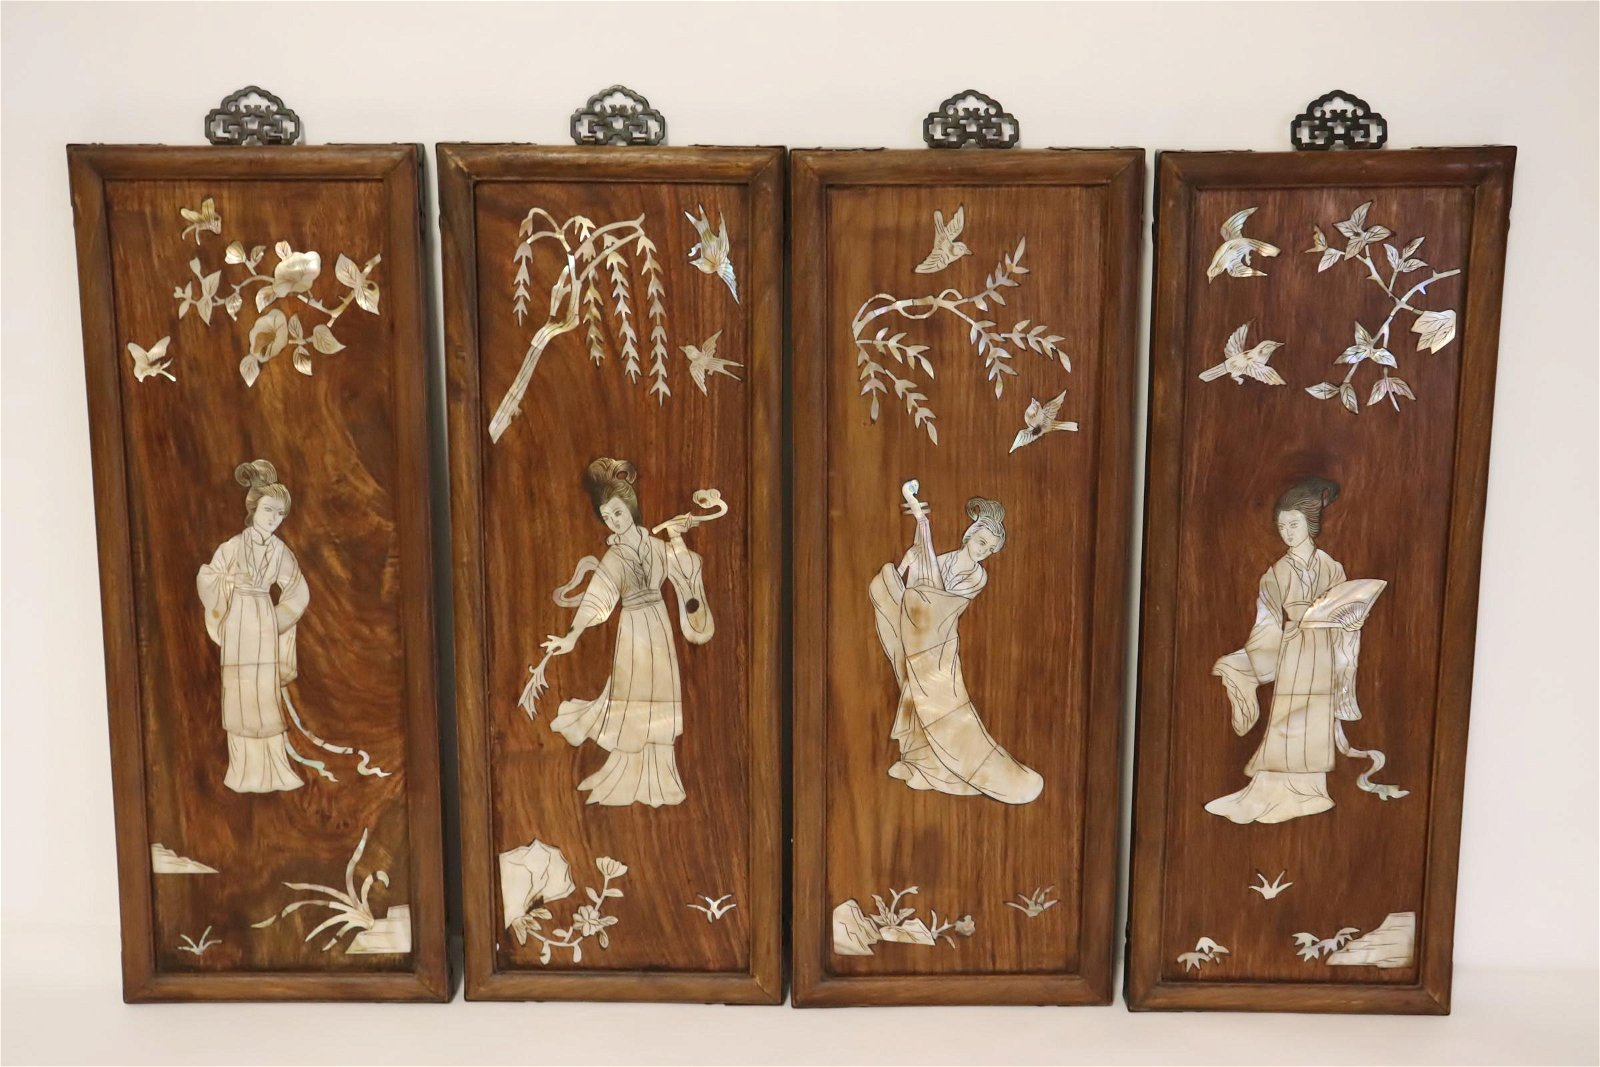 4 Chinese vintage rosewood panels w/ MOP inlaid